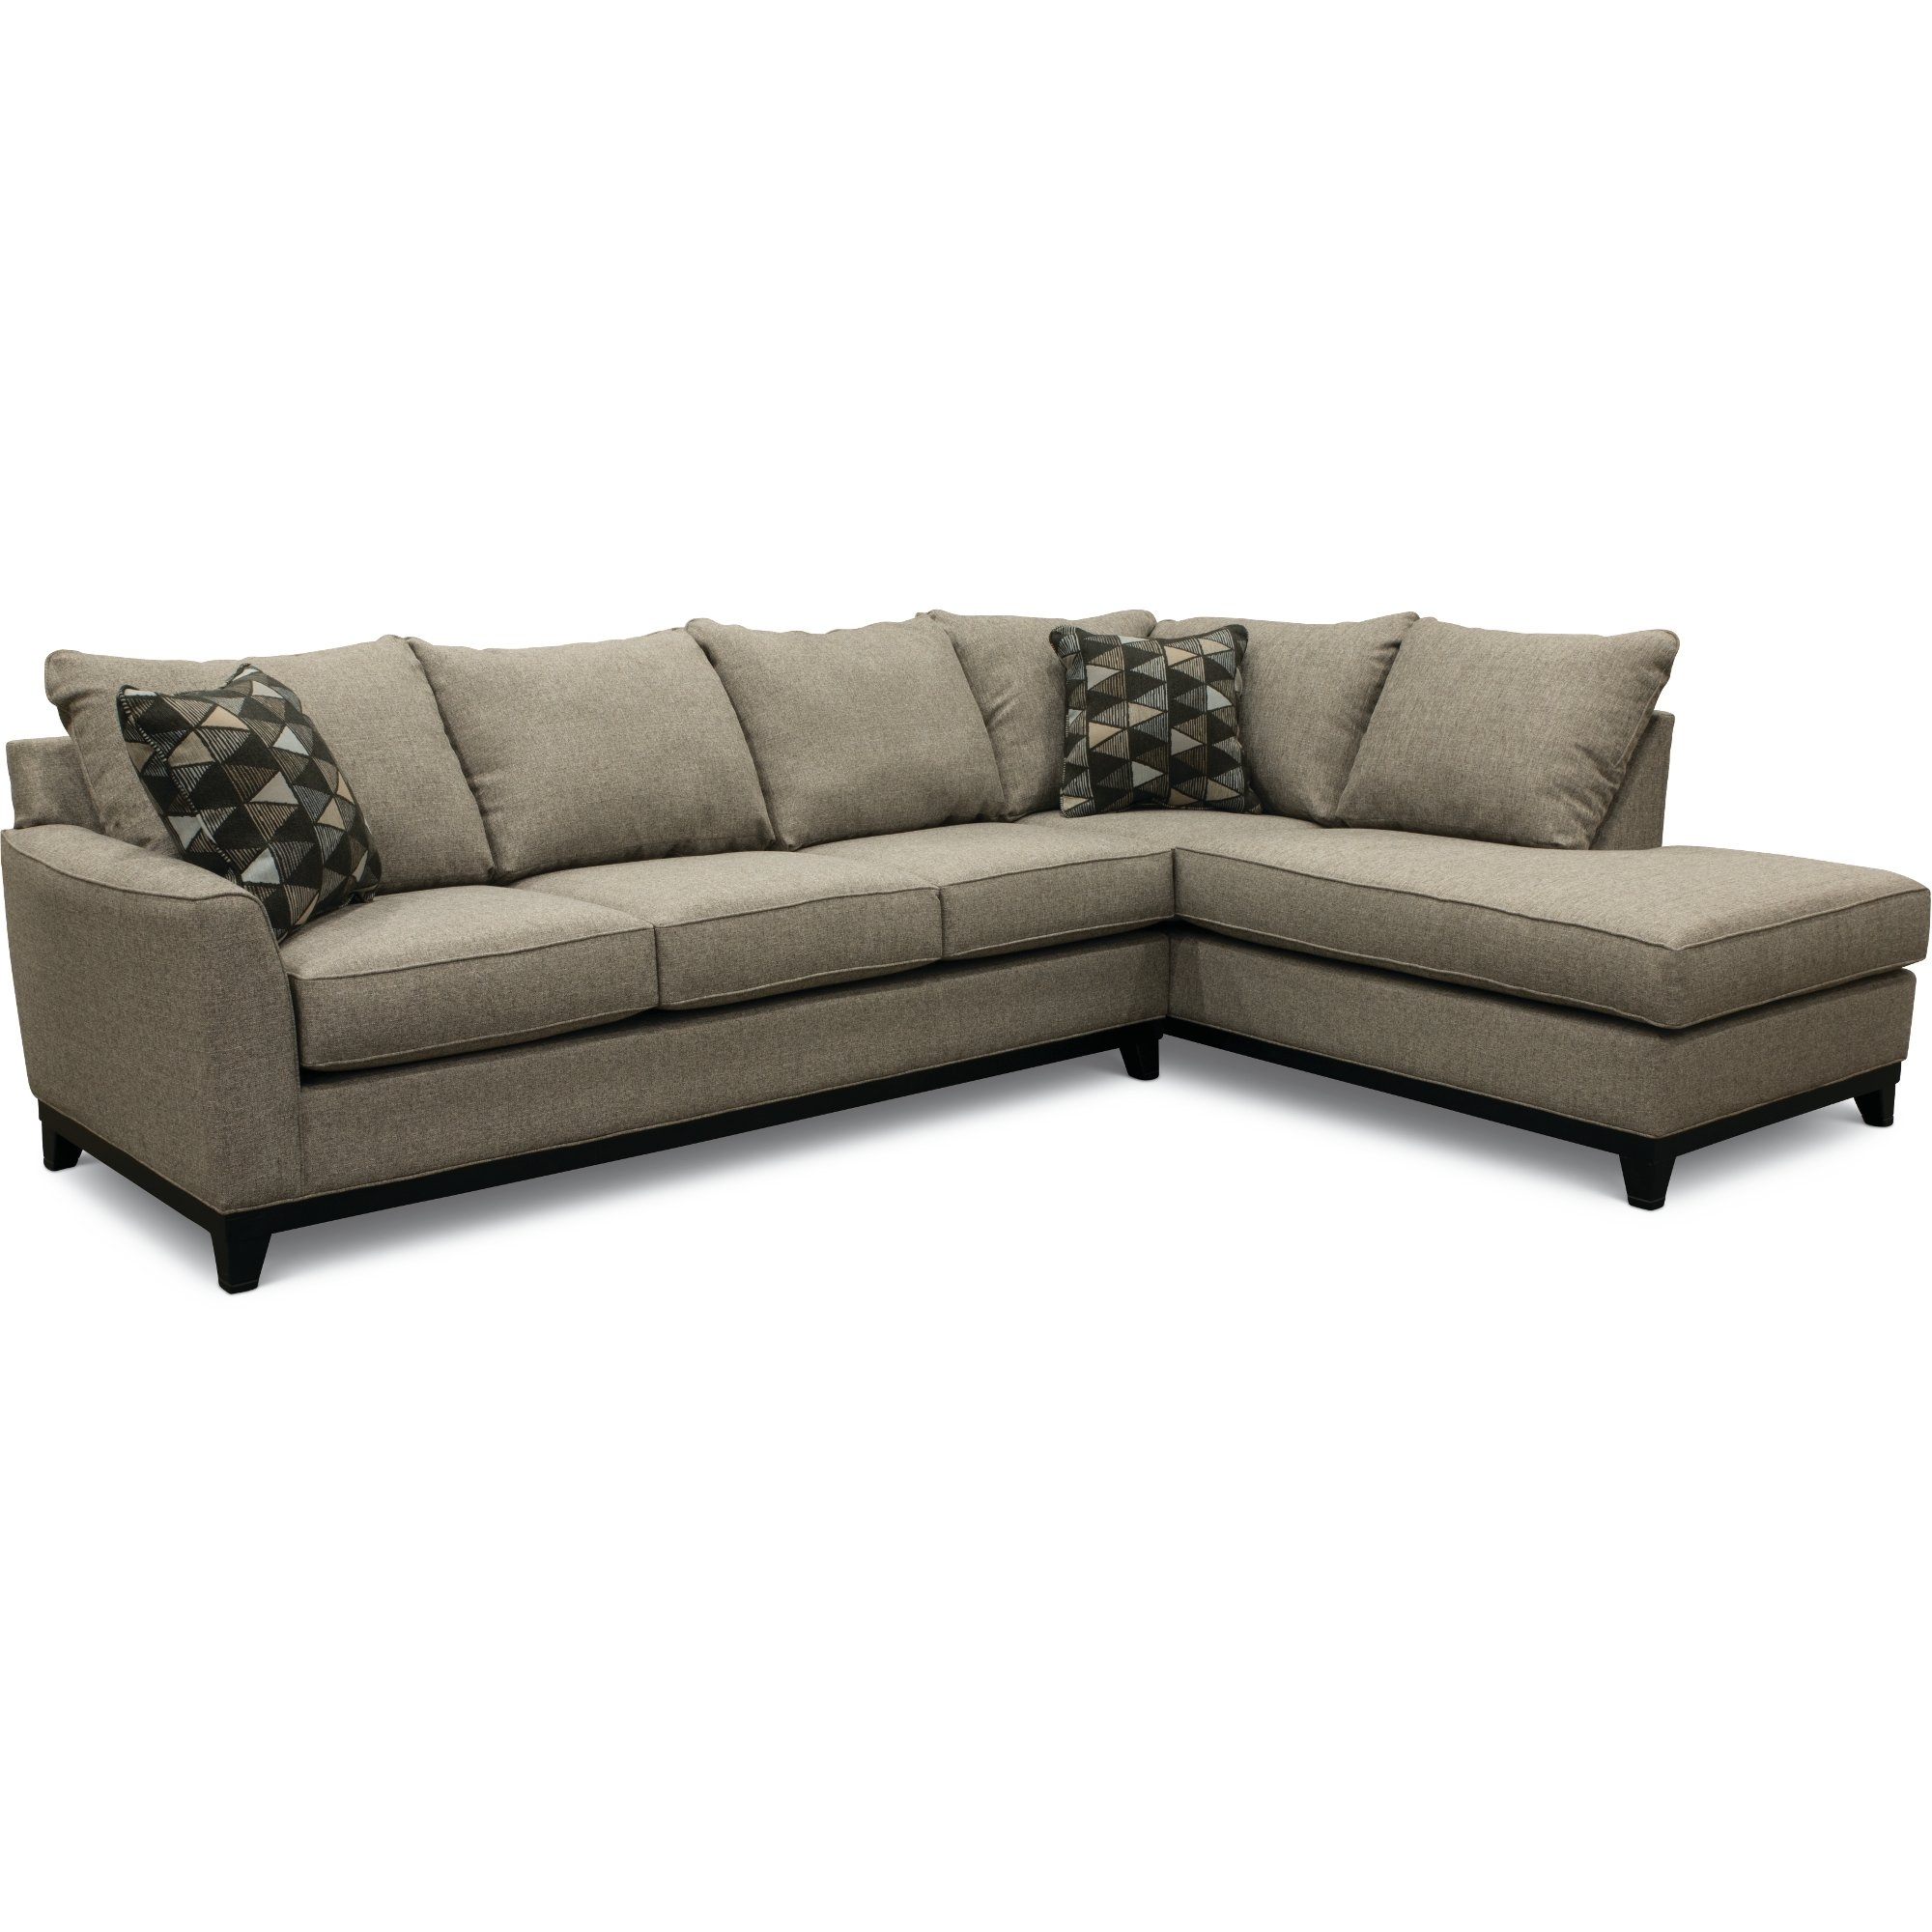 Casual Contemporary Slate Gray 2 Piece Sectional Sofa – Emerson | Rc Throughout Jobs Oat 2 Piece Sectionals With Left Facing Chaise (View 22 of 25)